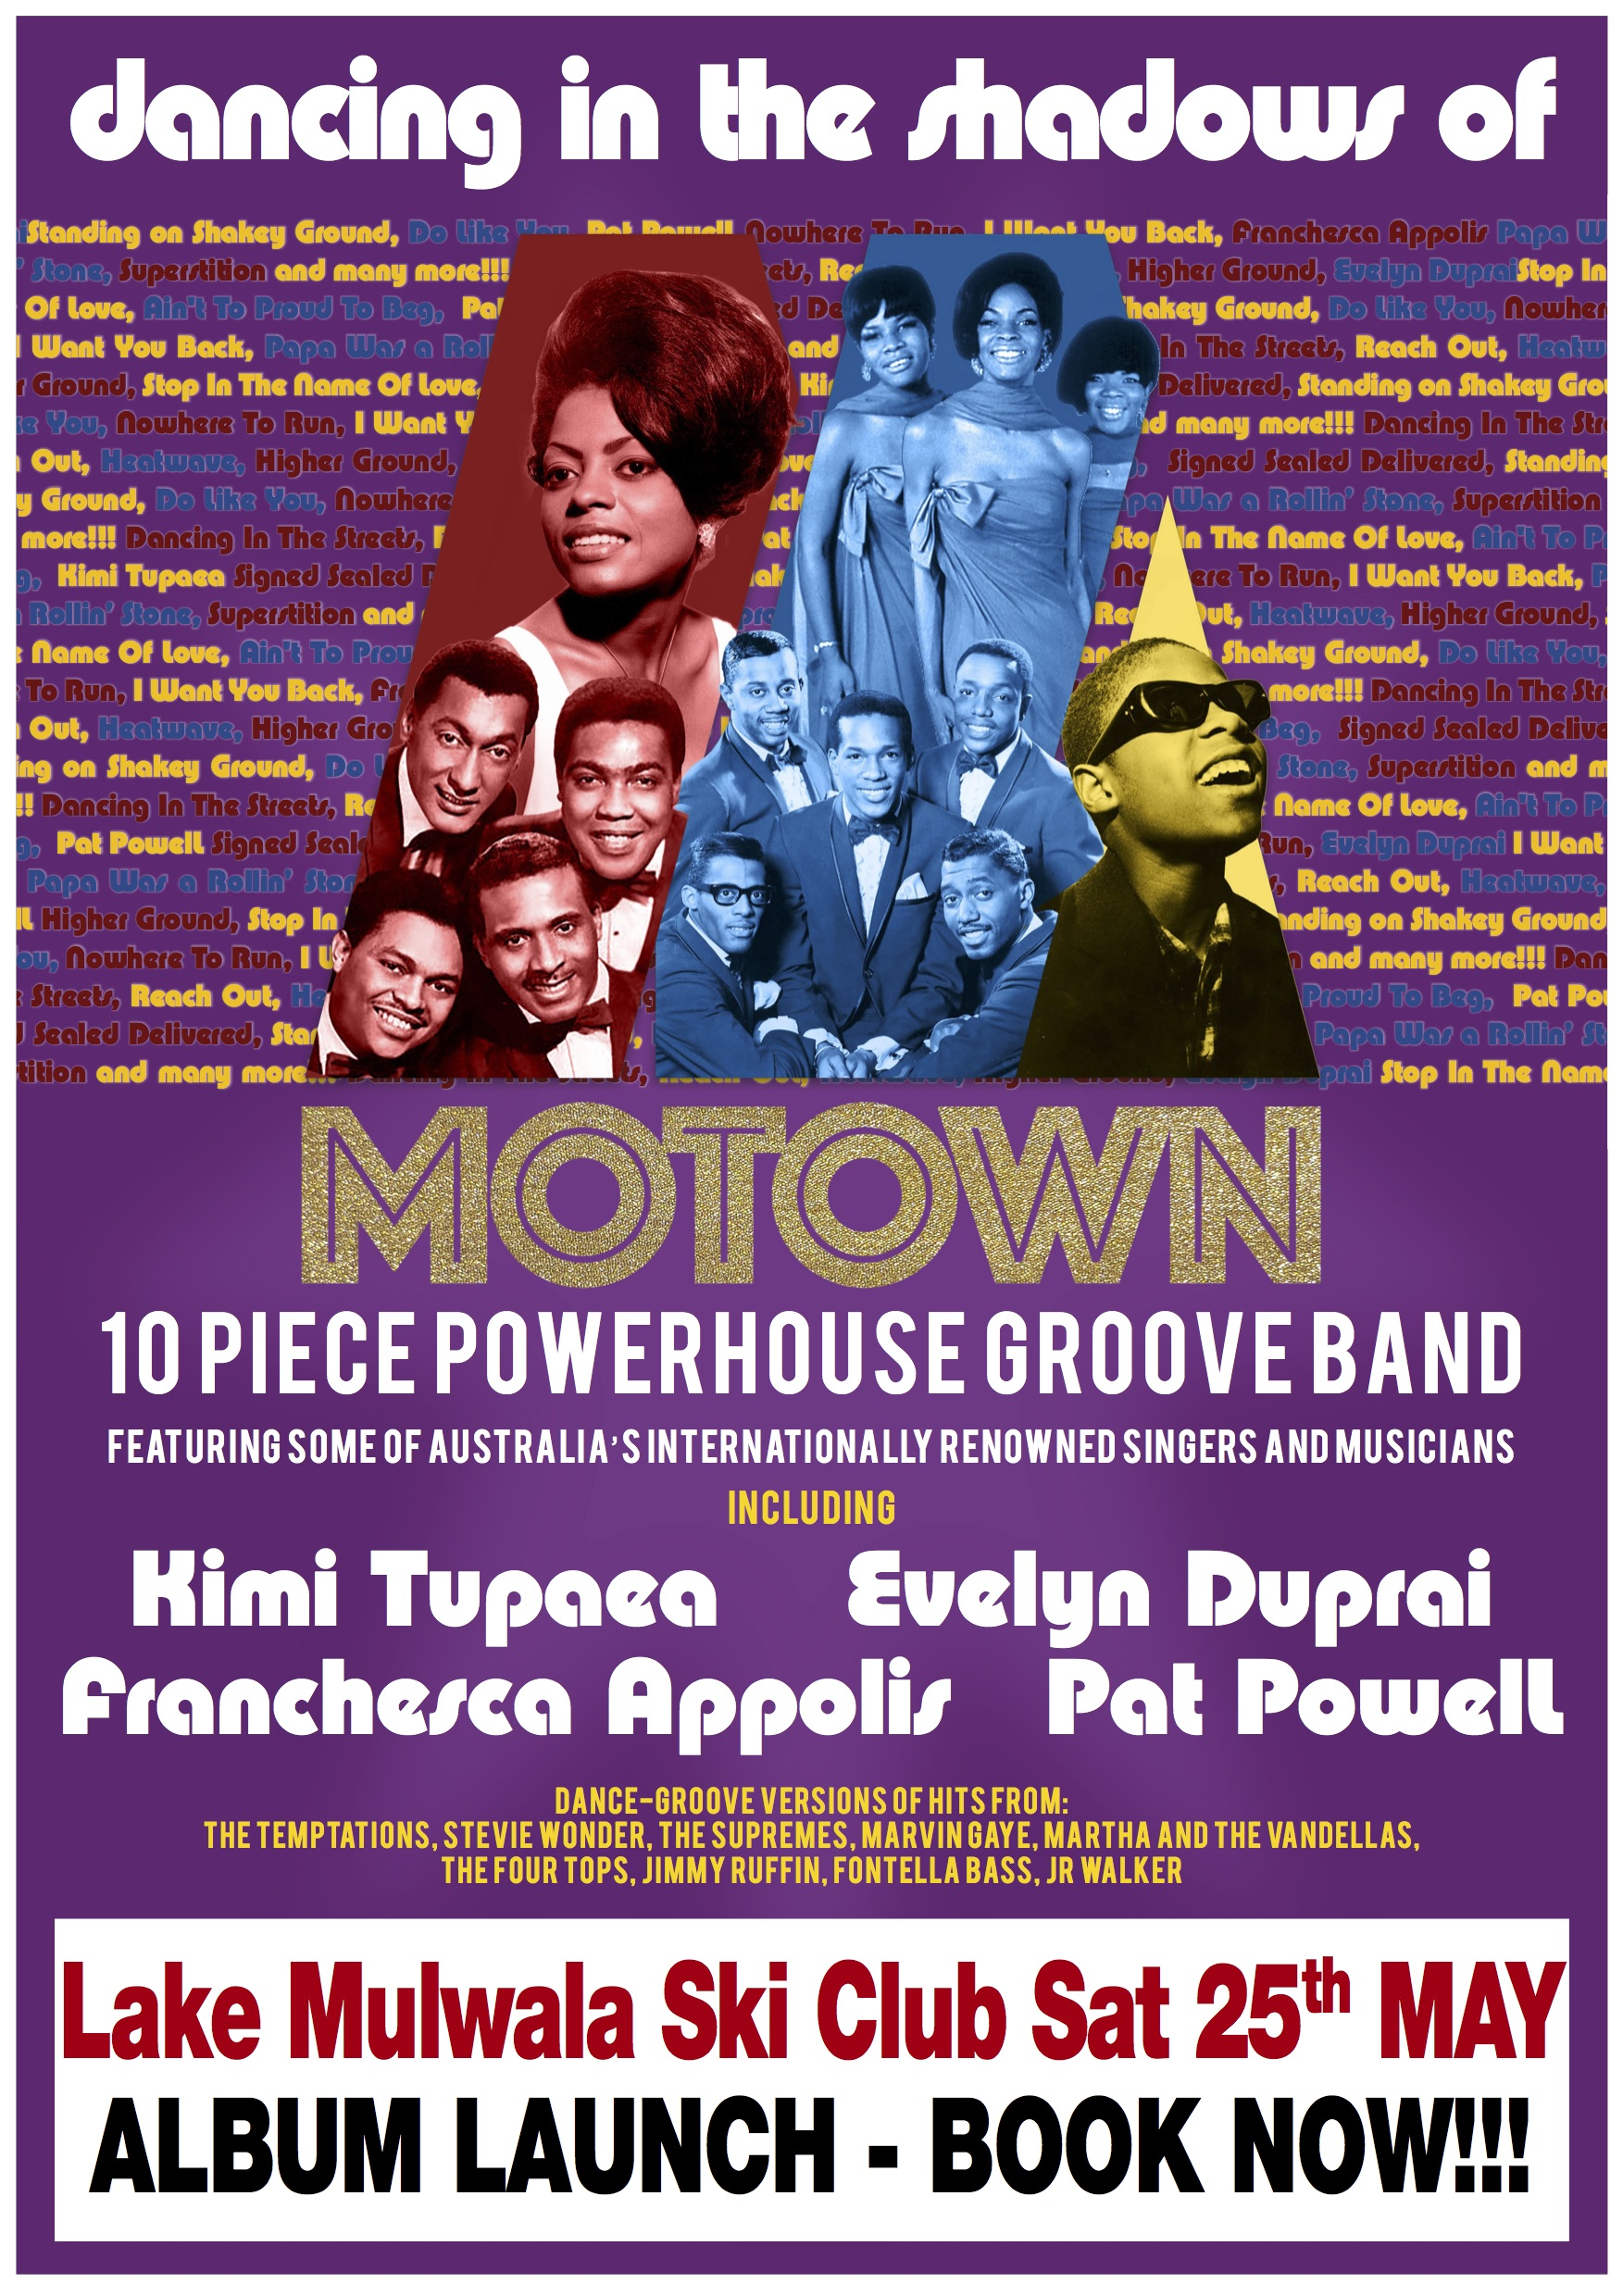 Motown poster 10 Piece LAKE MULWALA SKI CLUB SAT 25th MAY.jpg